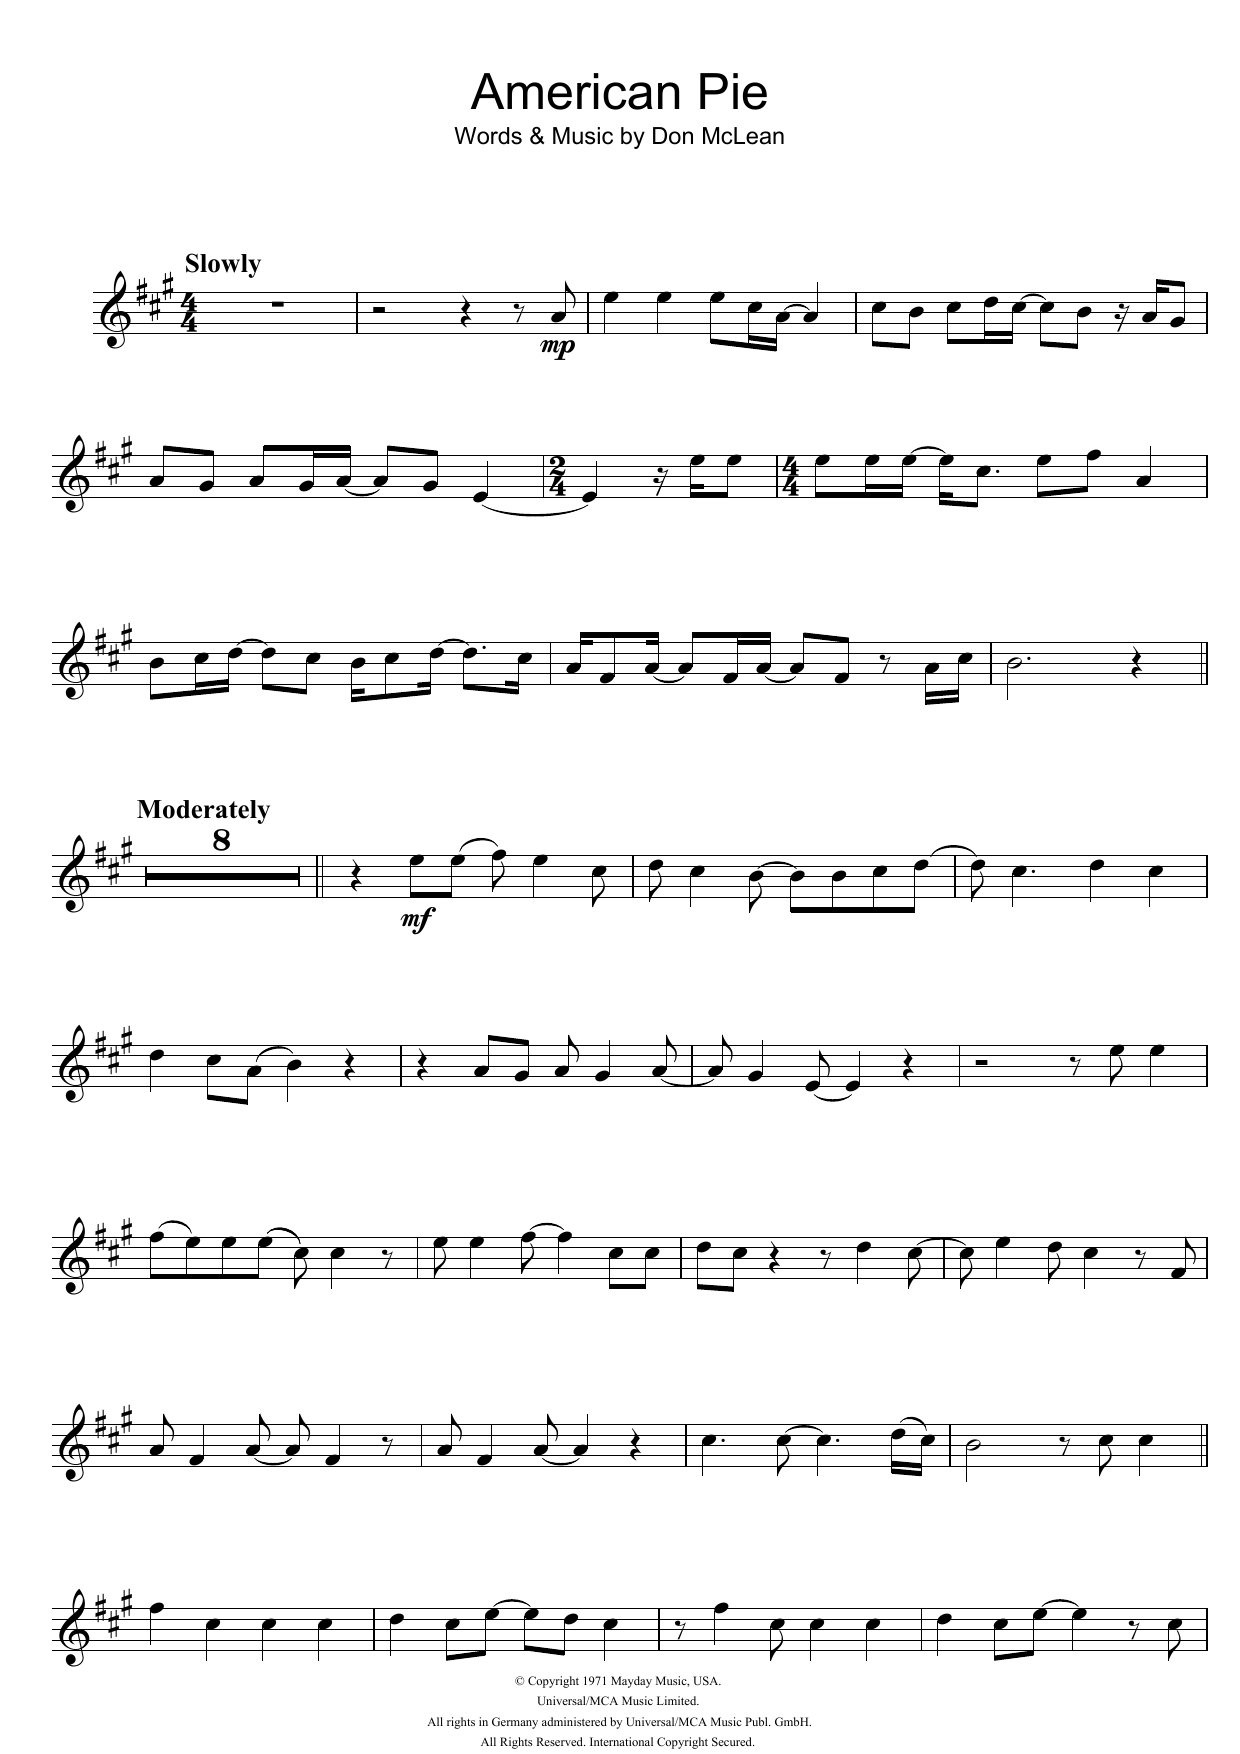 American Pie Sheet Music